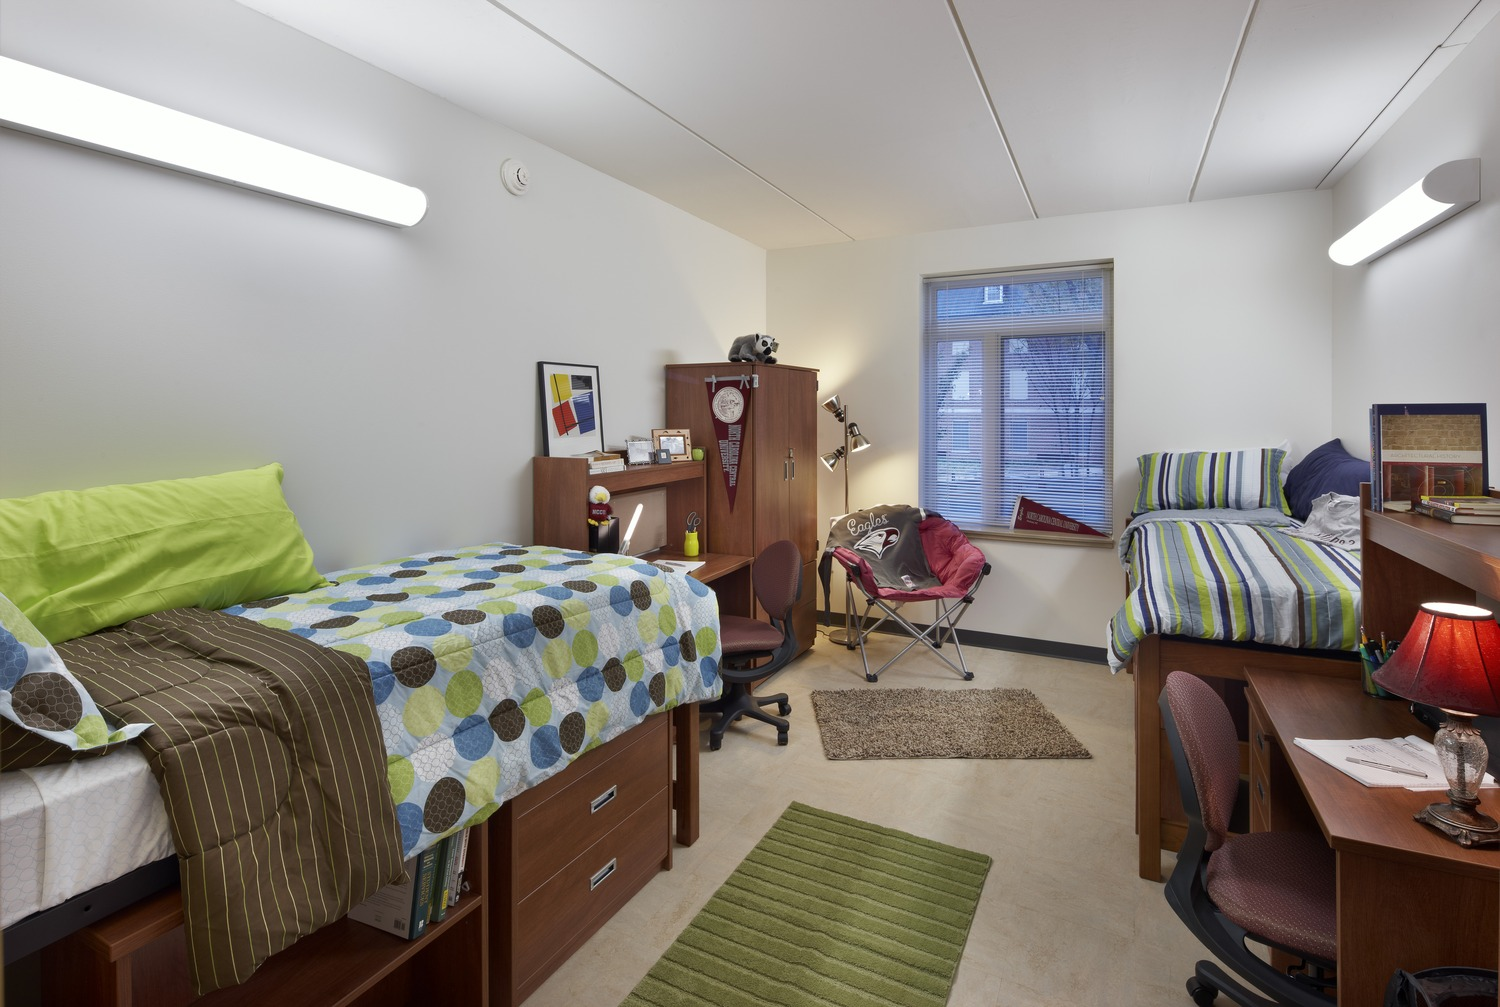 Most (241) of Chidley North's student living spaces are double-occupancy units, each with its own bathroom. c James West /JWest Productions